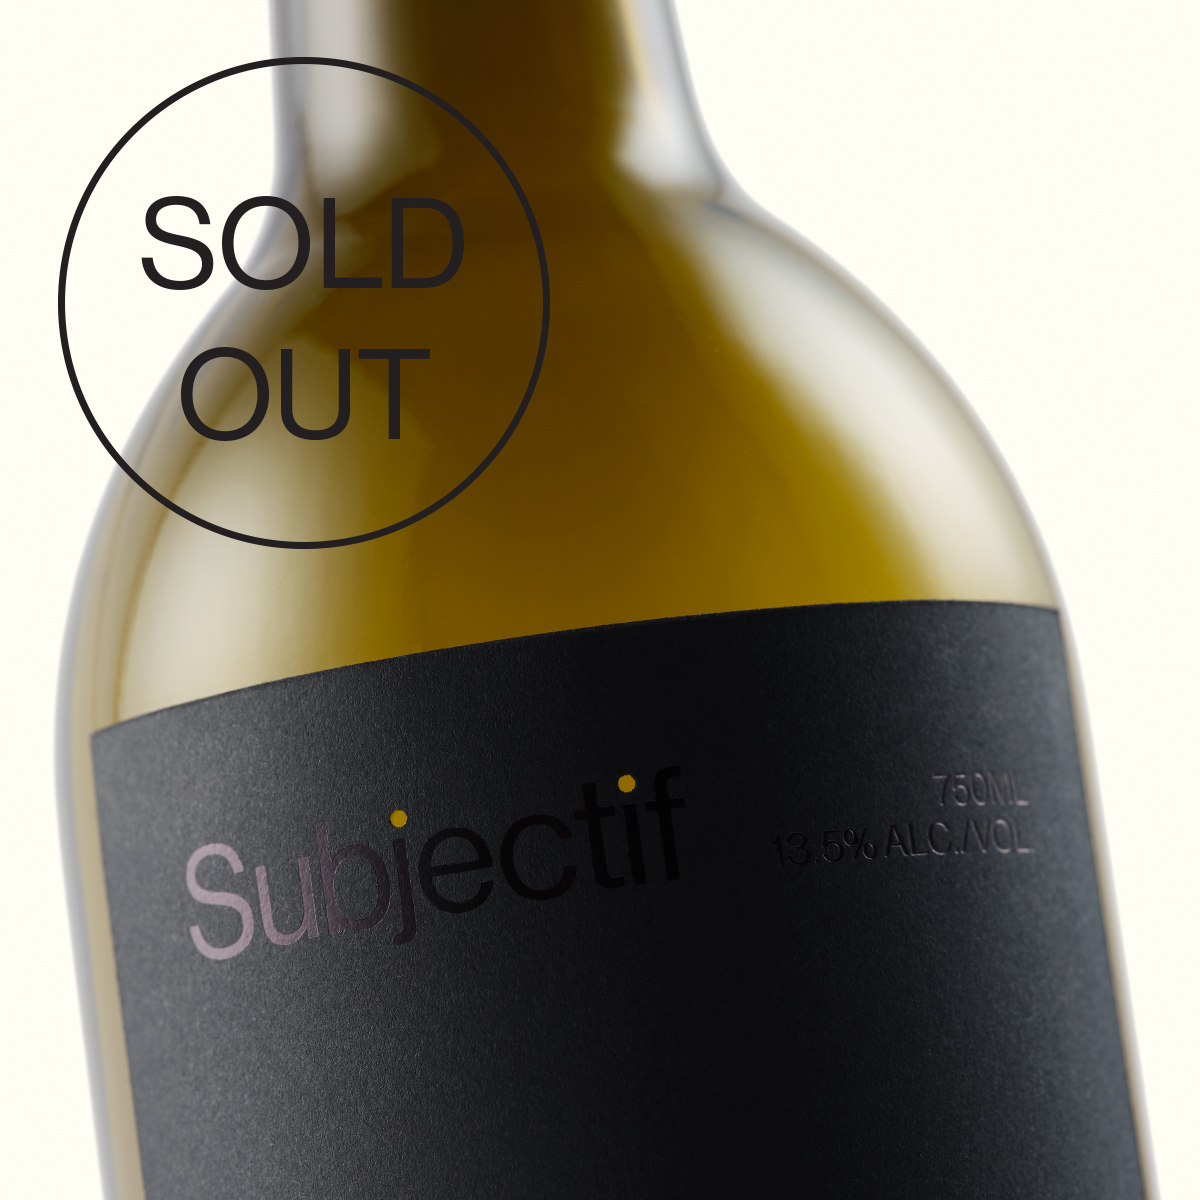 """We were thrilled at the overwhelming response to our first batch of Subjectif. We are currently sold out, however stay tuned for our second bottling, coming spring 2020."" - —13th Street Winery"